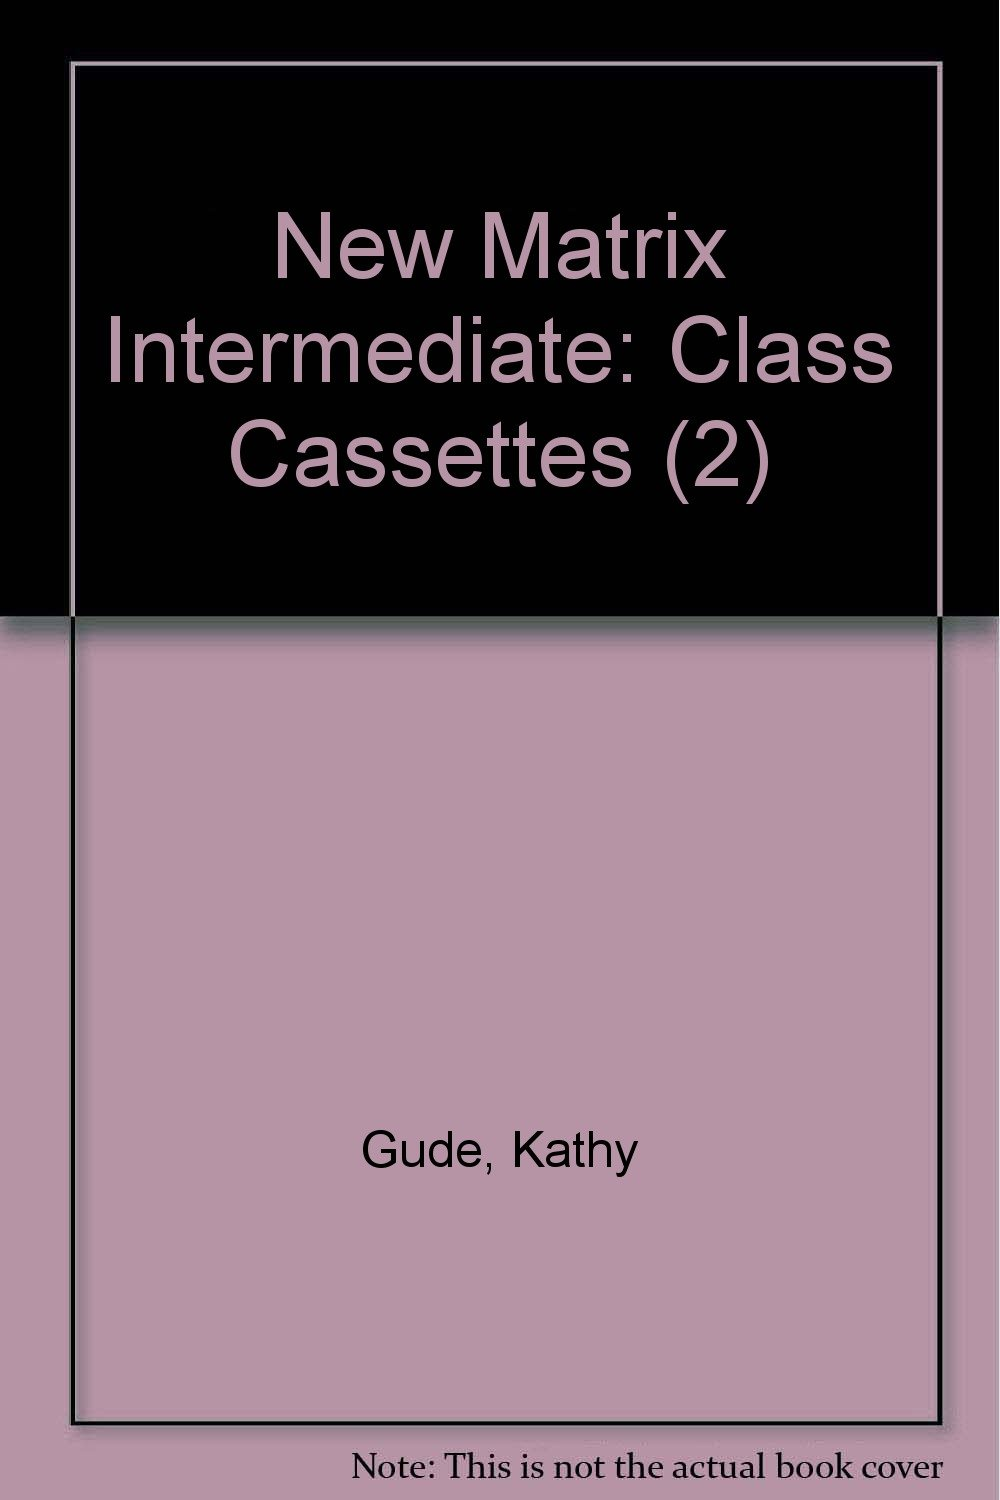 New Matrix Intermediate: Class Cassettes (2) pdf